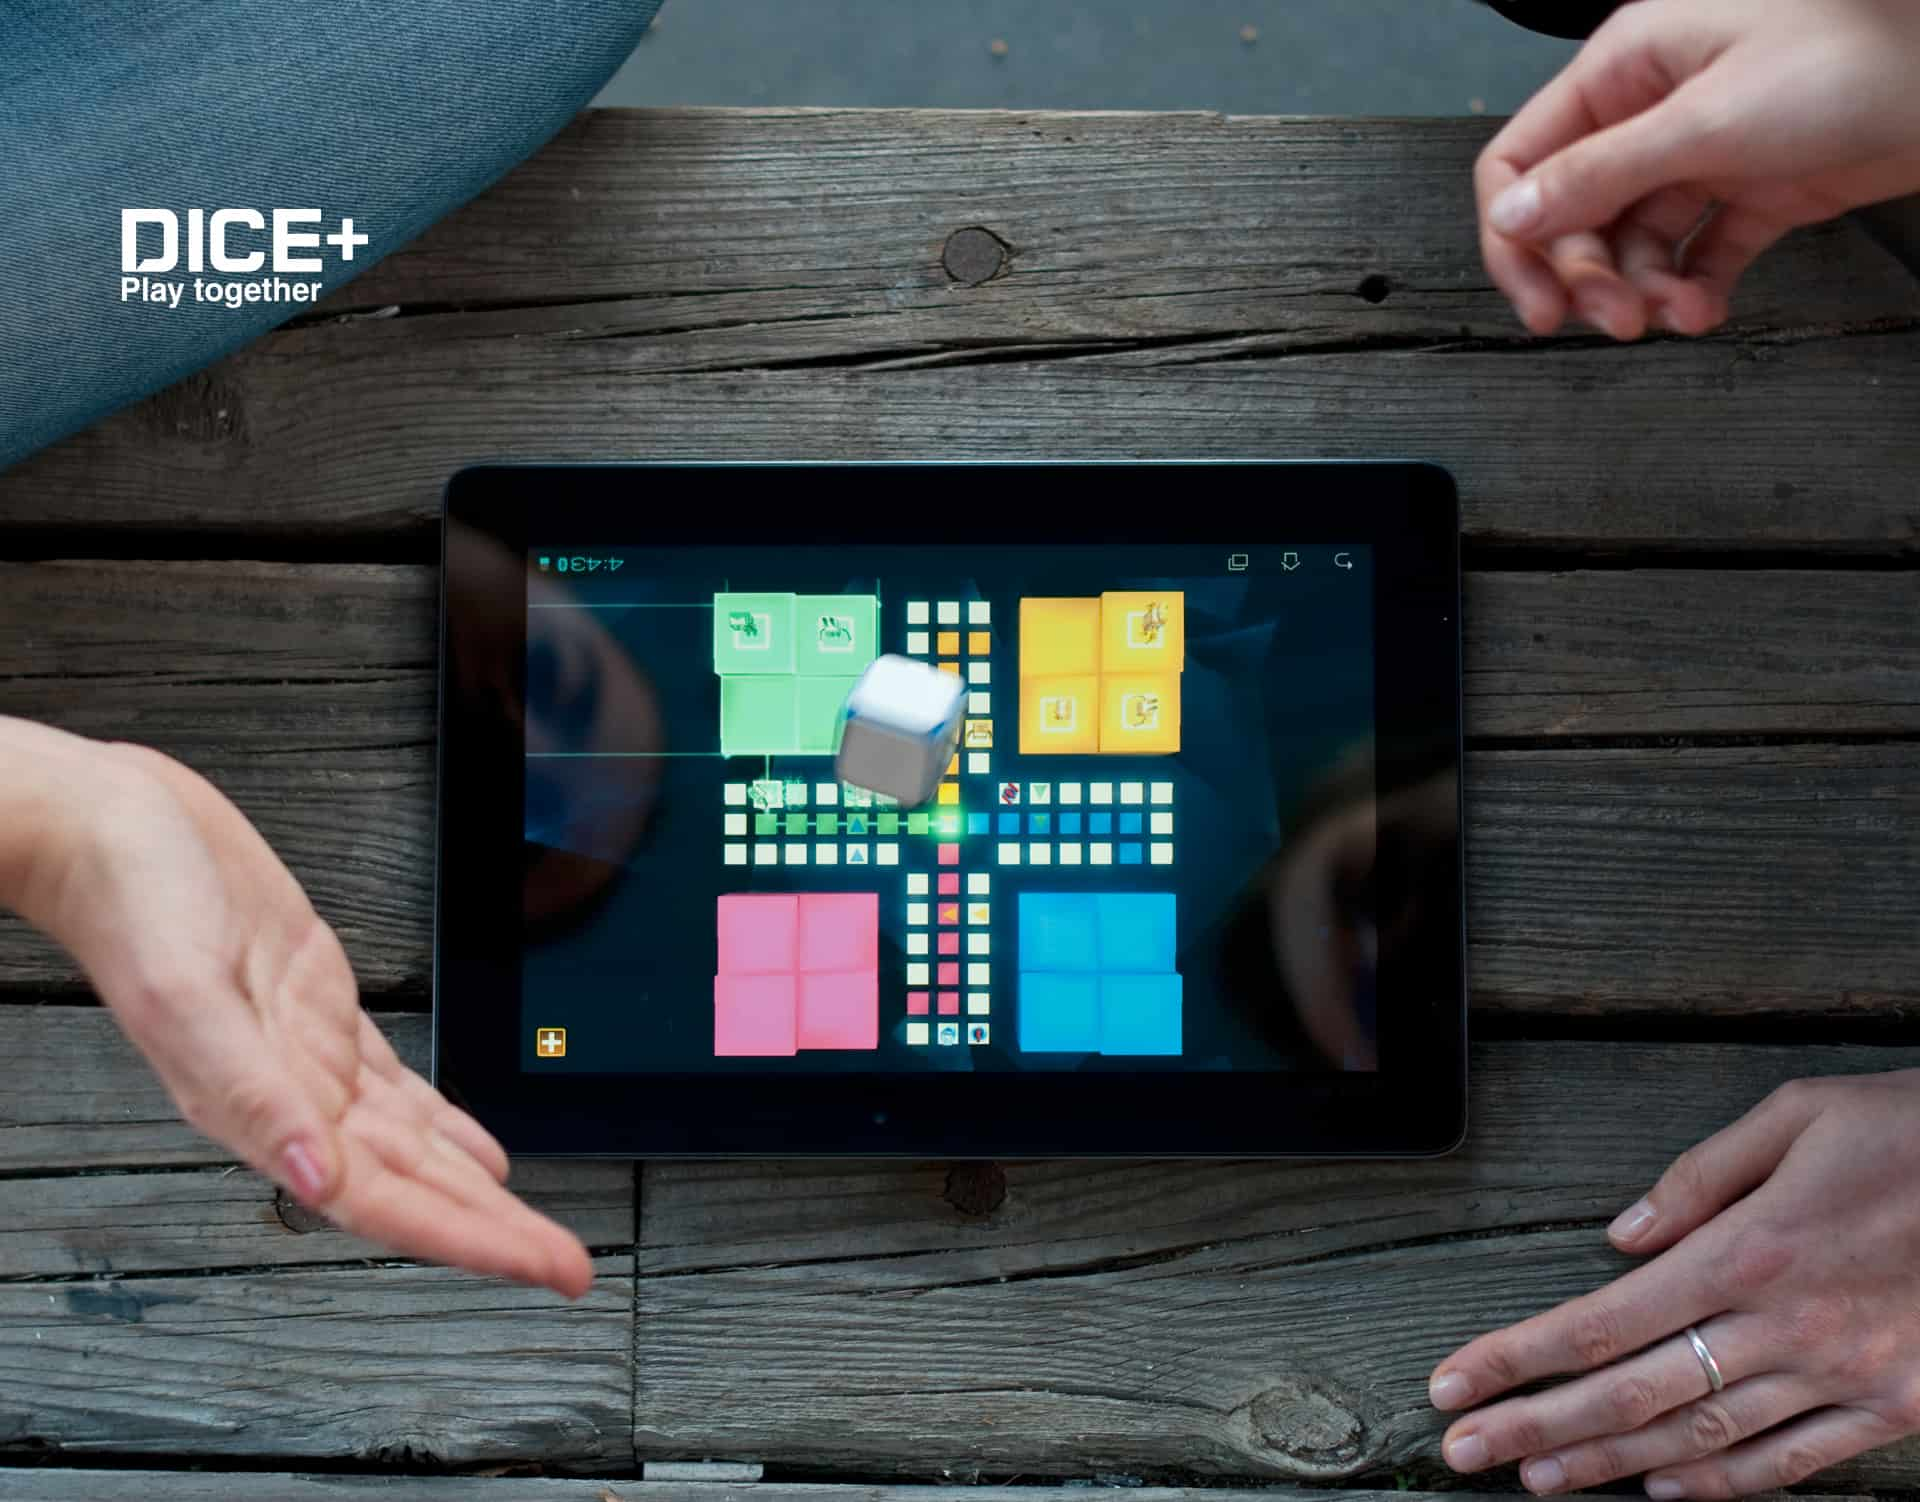 DICE+ Bluetooth Gaming Dice Cool Ipad Game Accessory